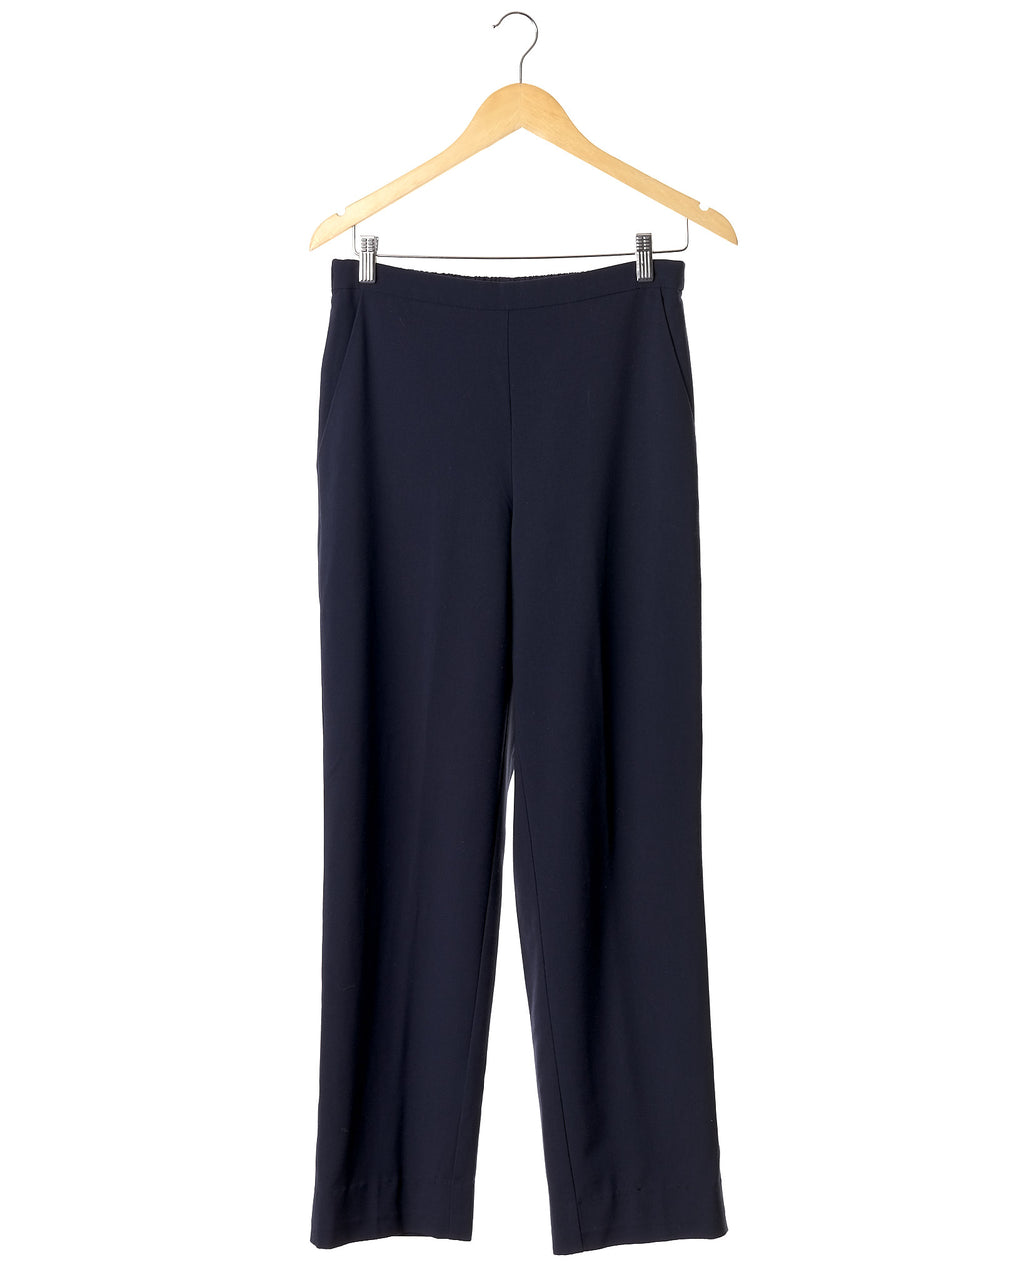 Classic Navy Loose Fit Trousers